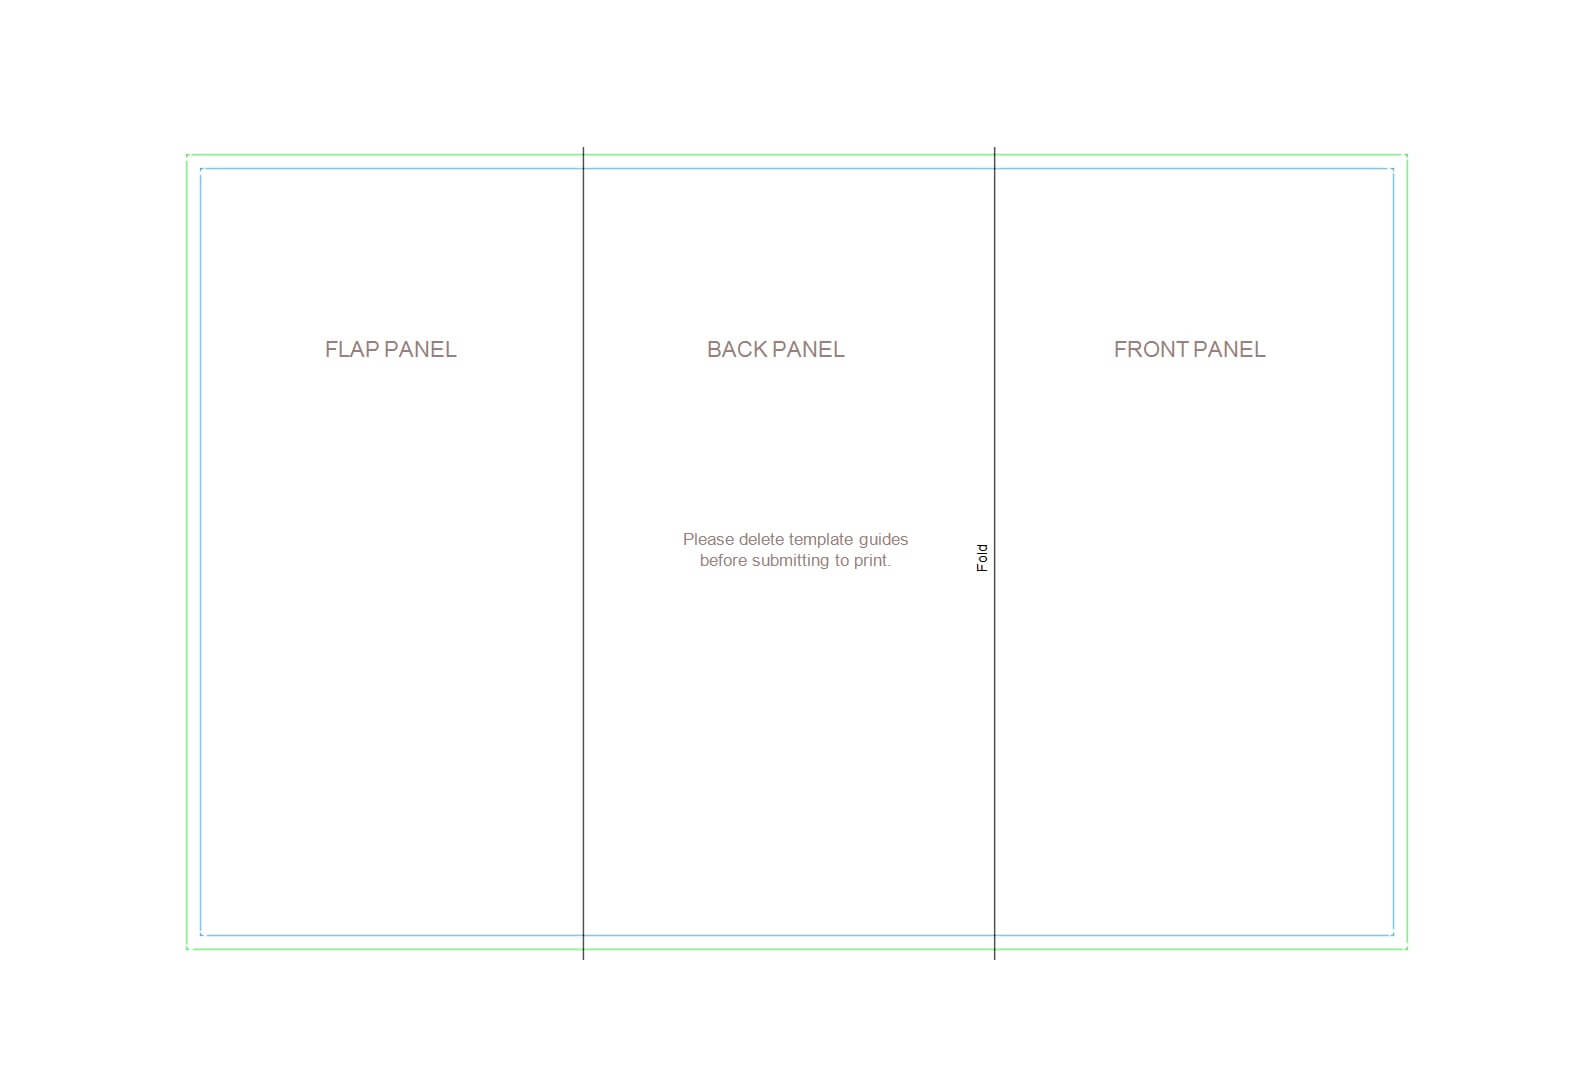 50 Free Pamphlet Templates [Word / Google Docs] ᐅ Template Lab with regard to Google Doc Brochure Template